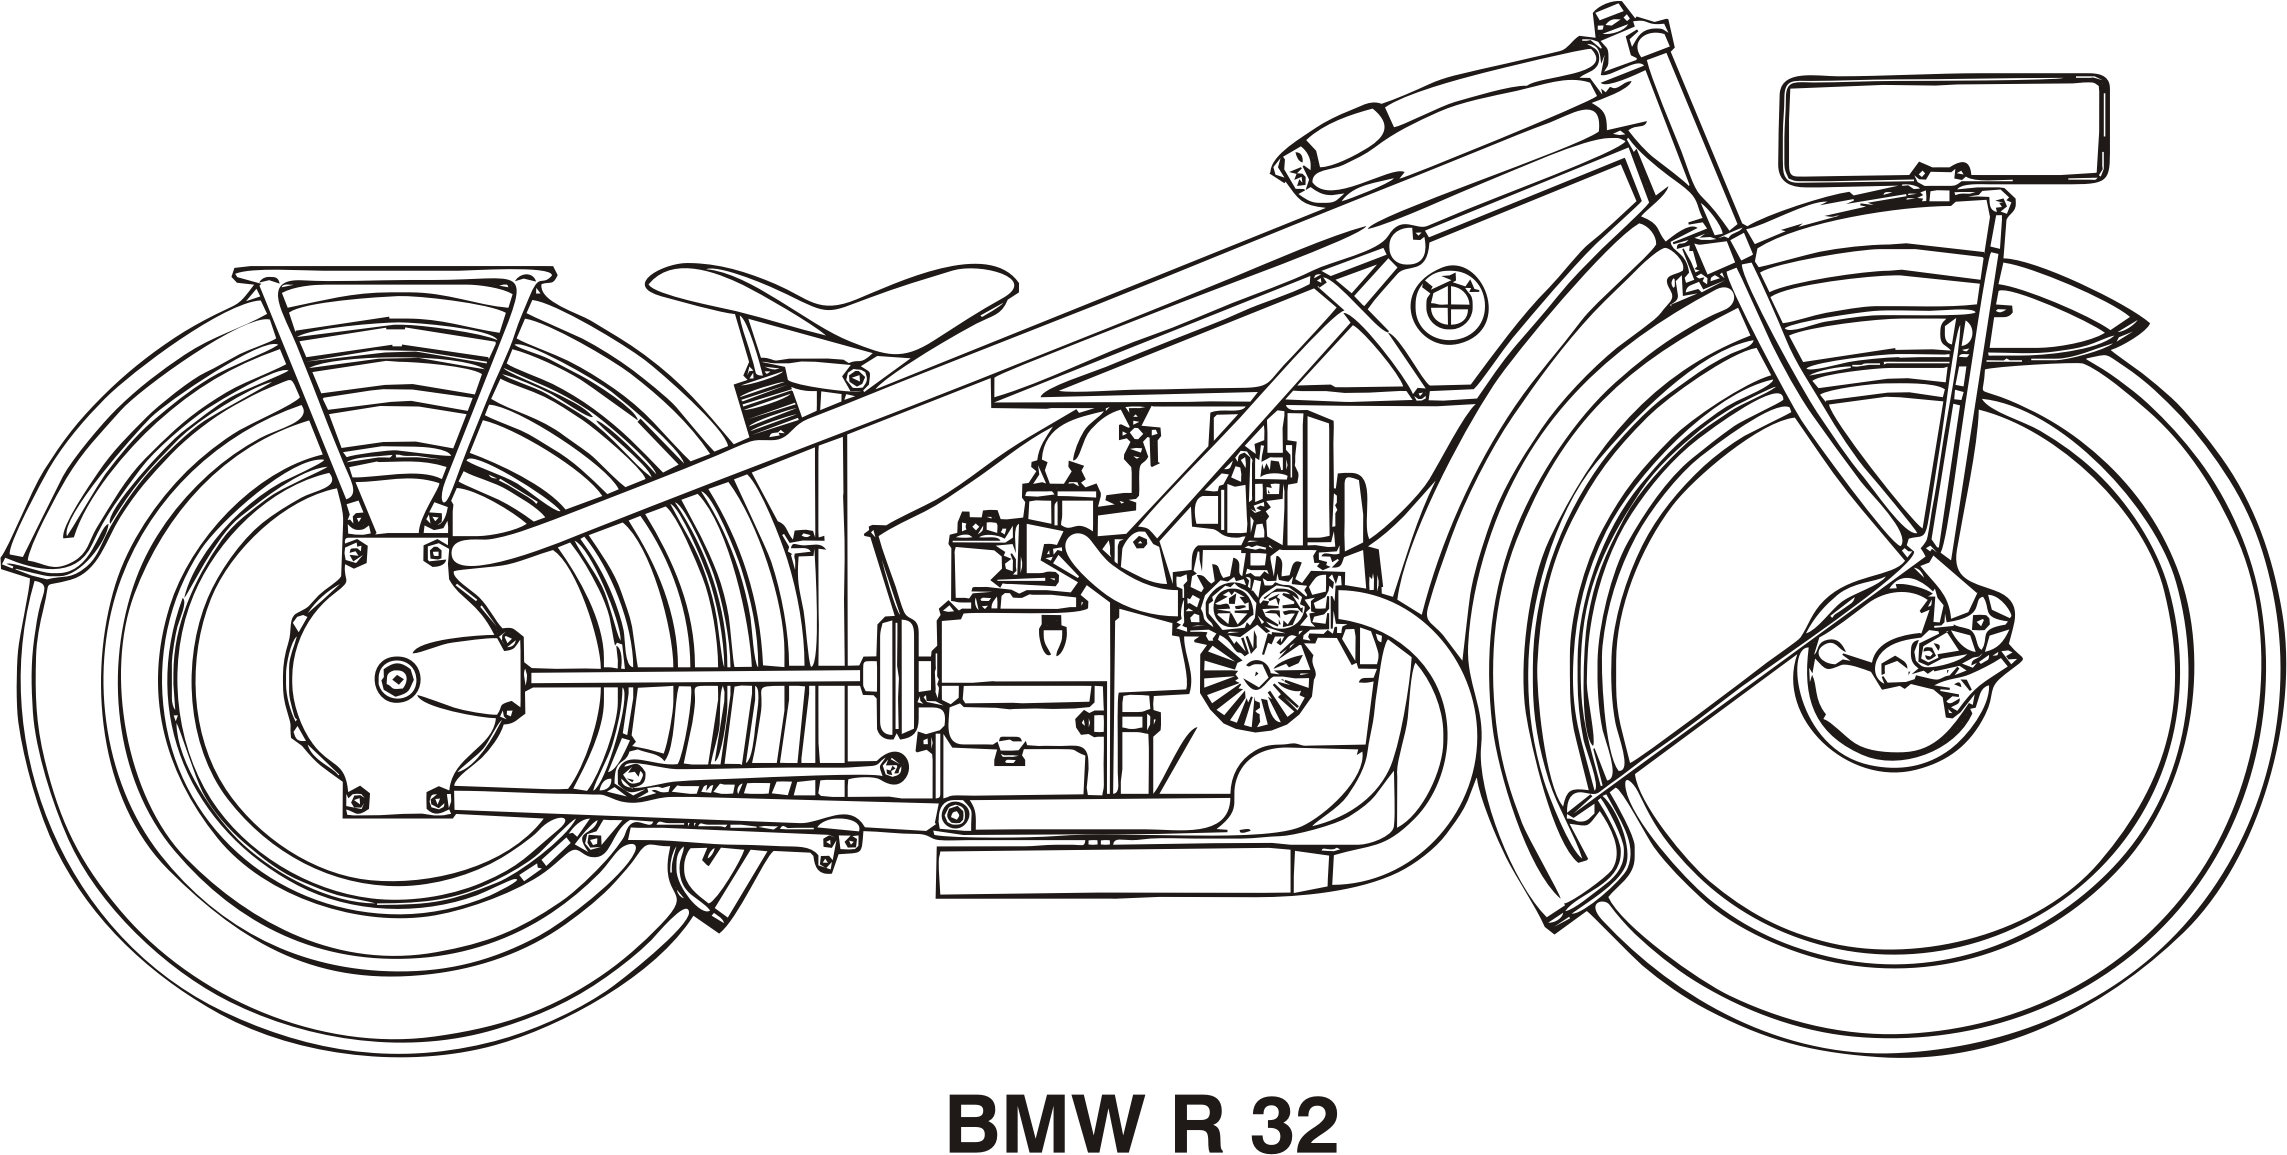 BMW R32, year 1923 by Vanja